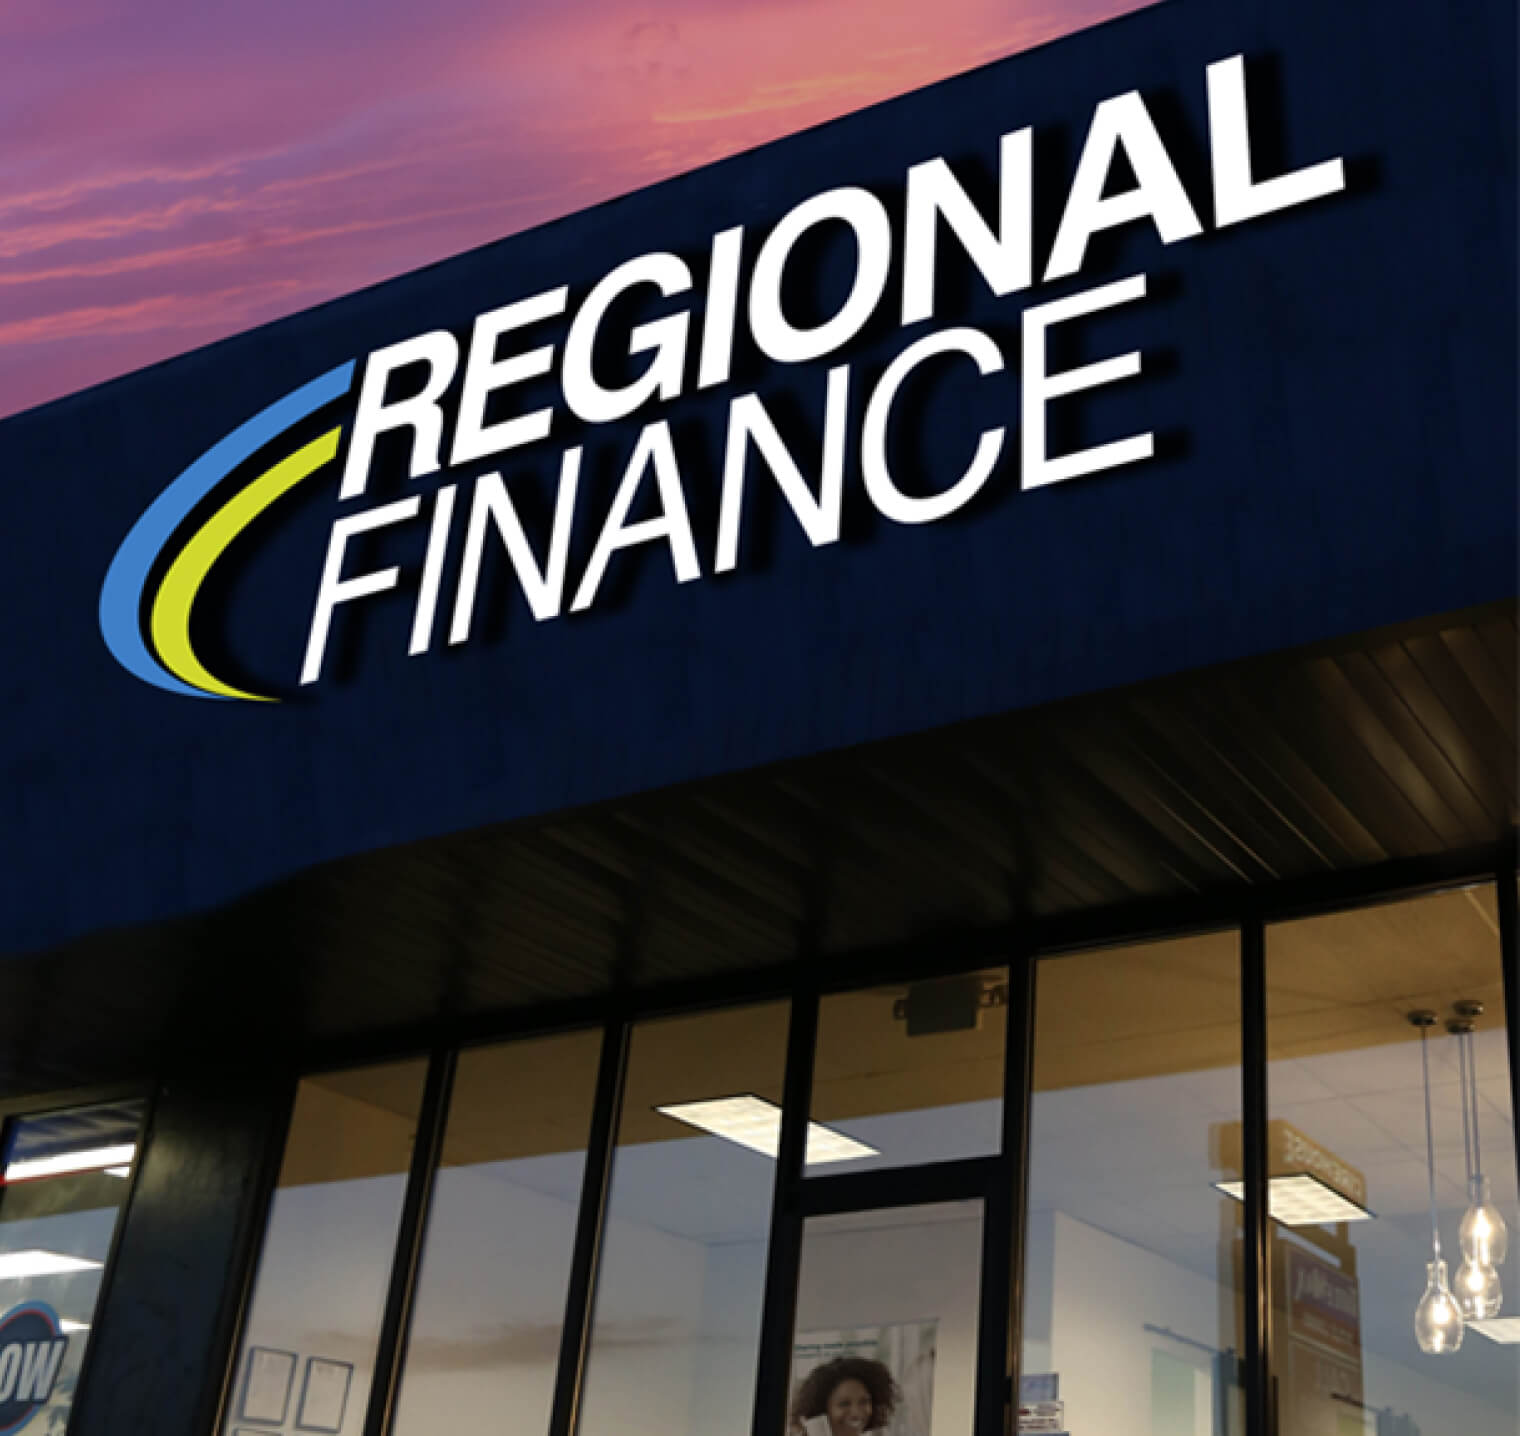 Personal Loans | Prequalify Now | Regional Finance